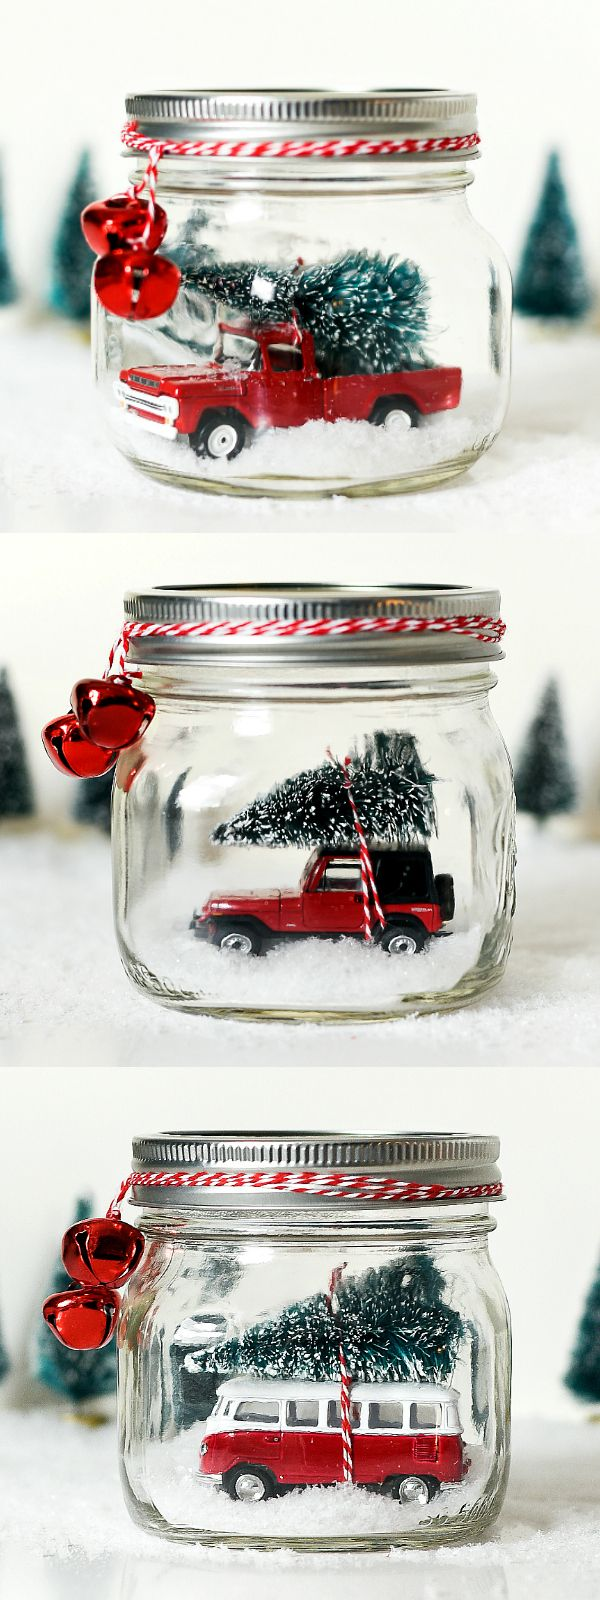 Mason Jar Snow Globe with Vintage Jeep Wrangler - Vintage Red Pick Up Truck Mason Jar Snow Globe - Vintage VW Bus Snow Globe